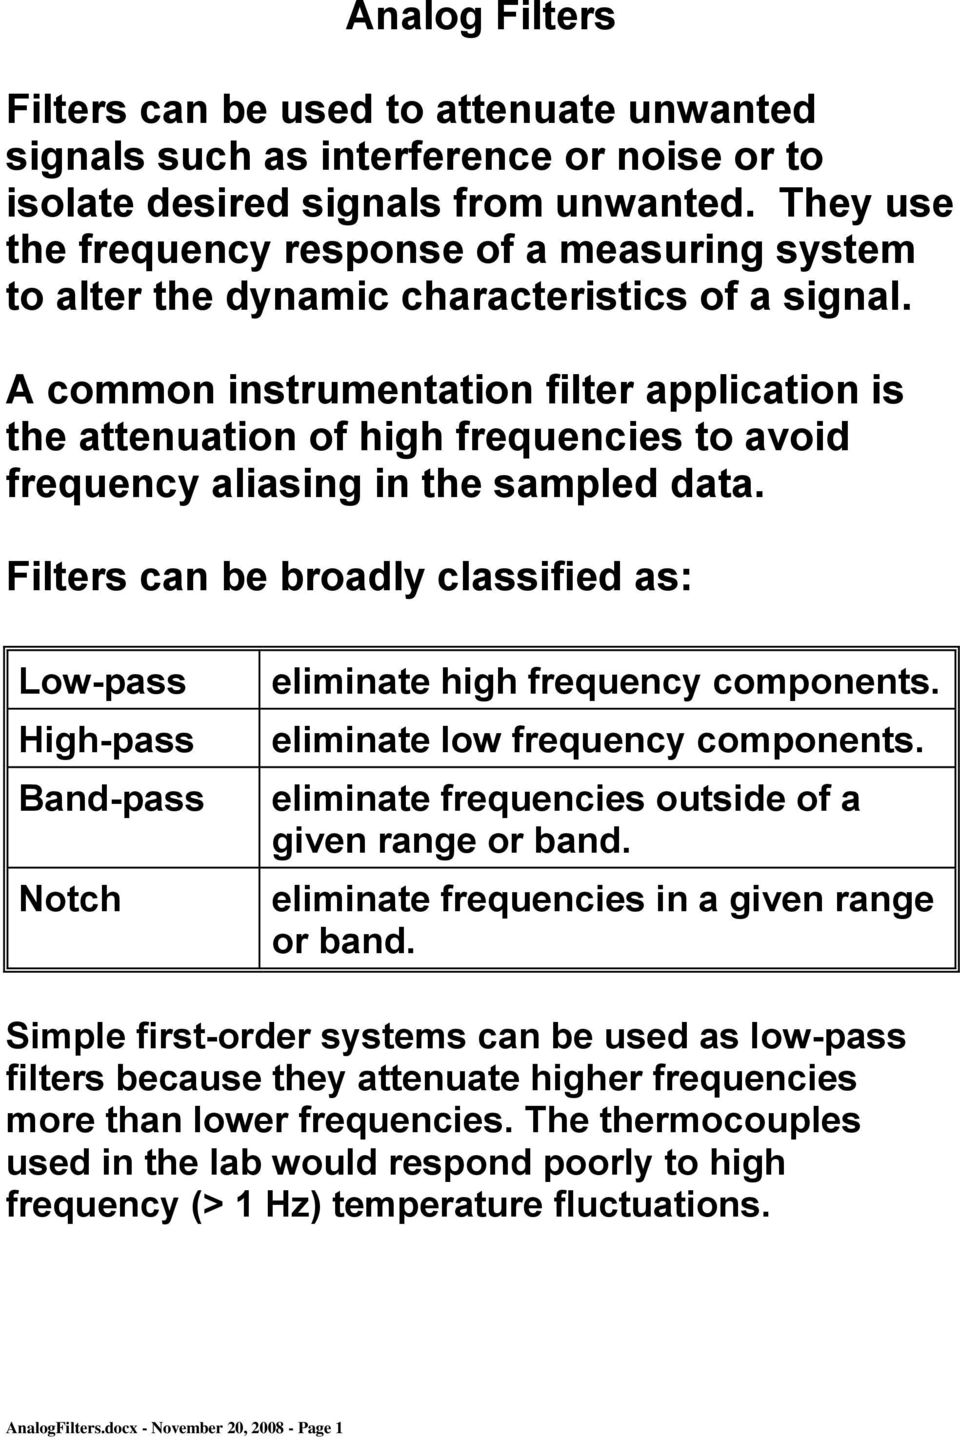 A common instrumentation filter application is the attenuation of high frequencies to avoid frequency aliasing in the sampled data.